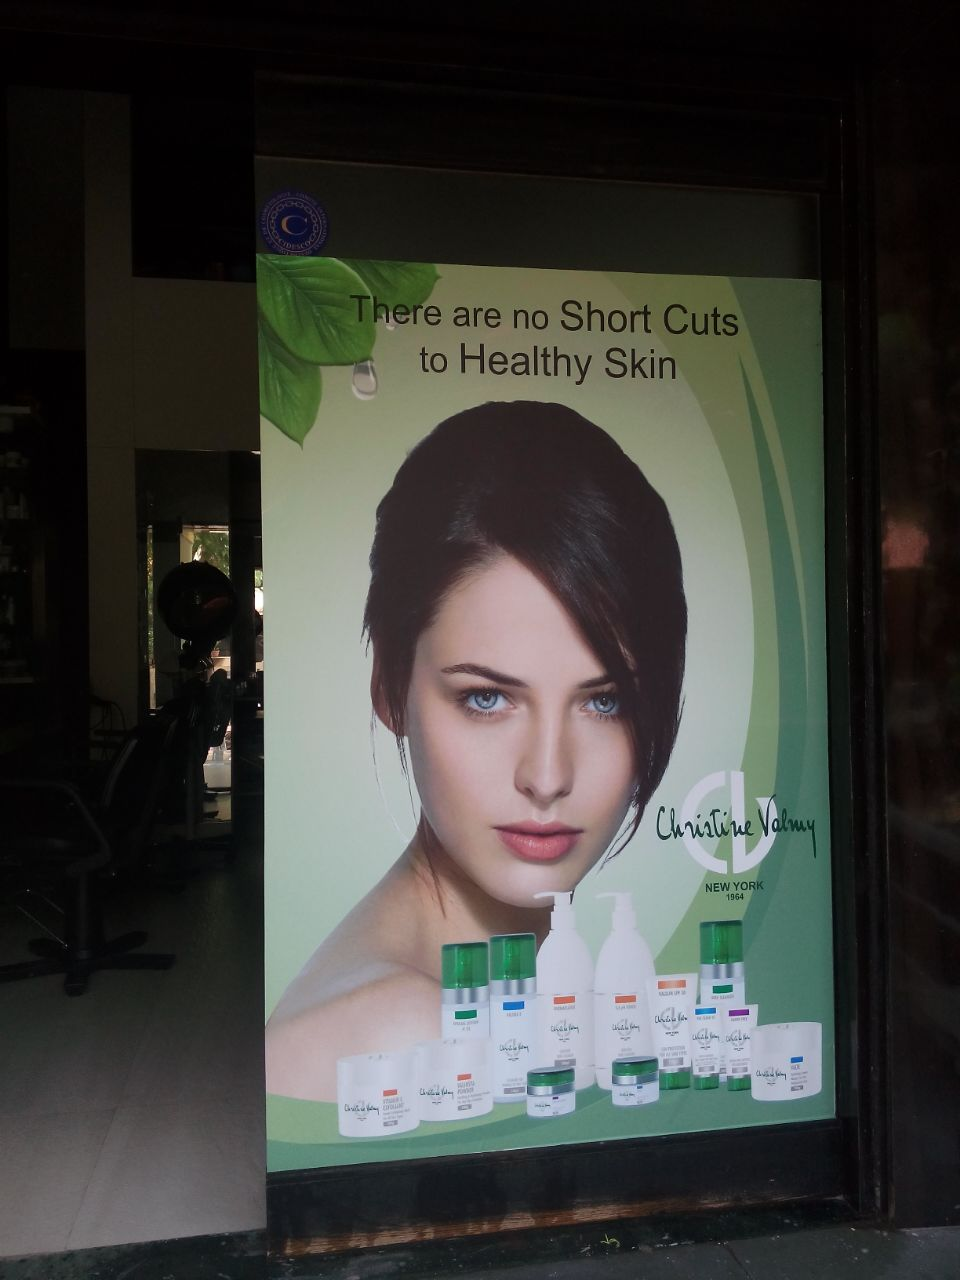 eco solvent vinyl print used to brand the storefront of a popular beauty salon company